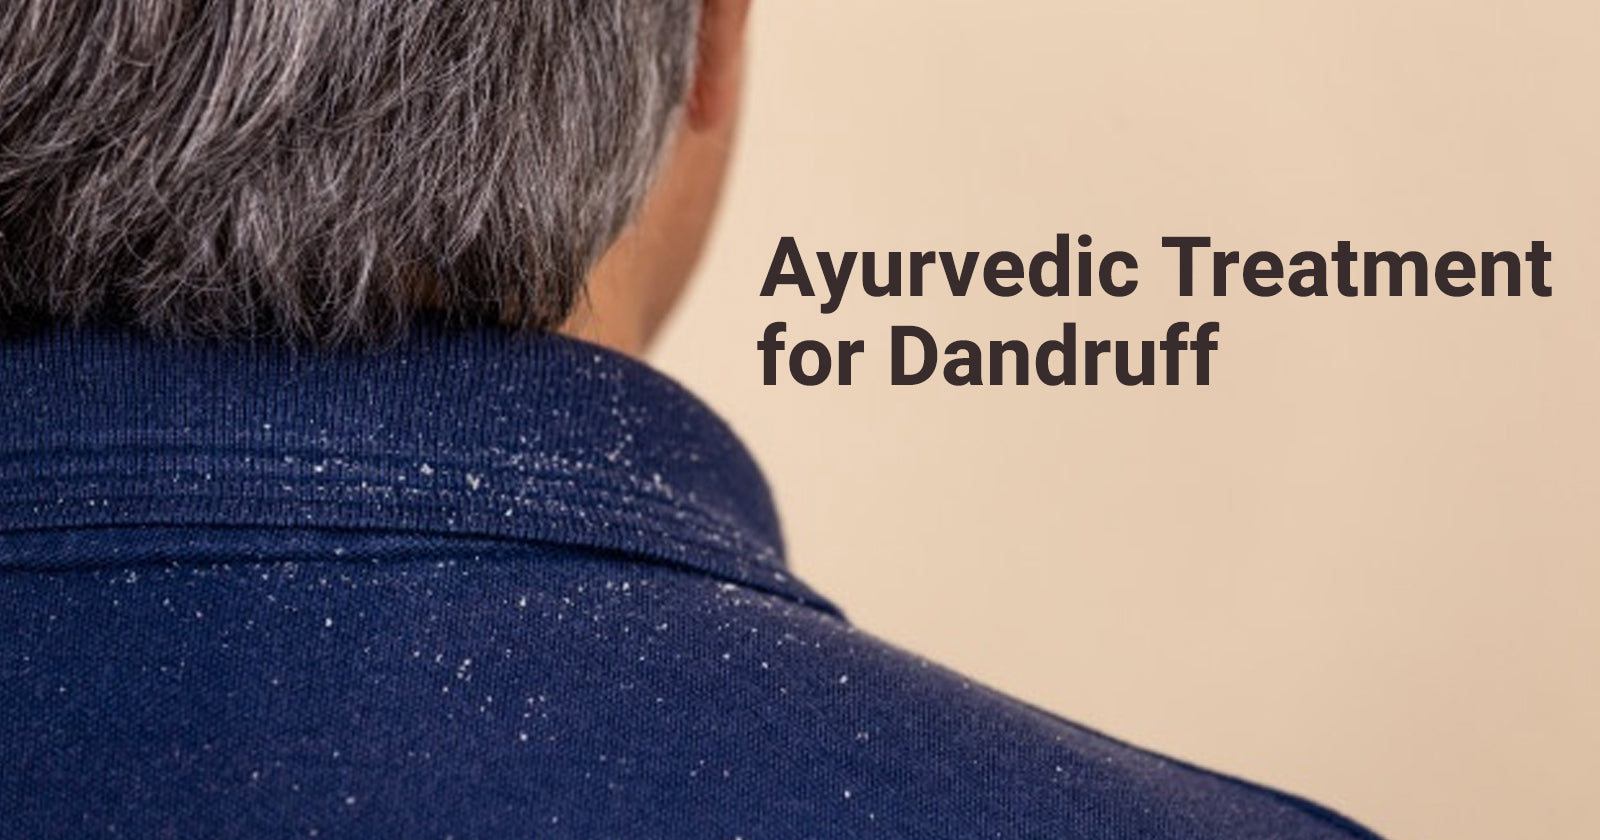 dandruff treatment in ayurveda